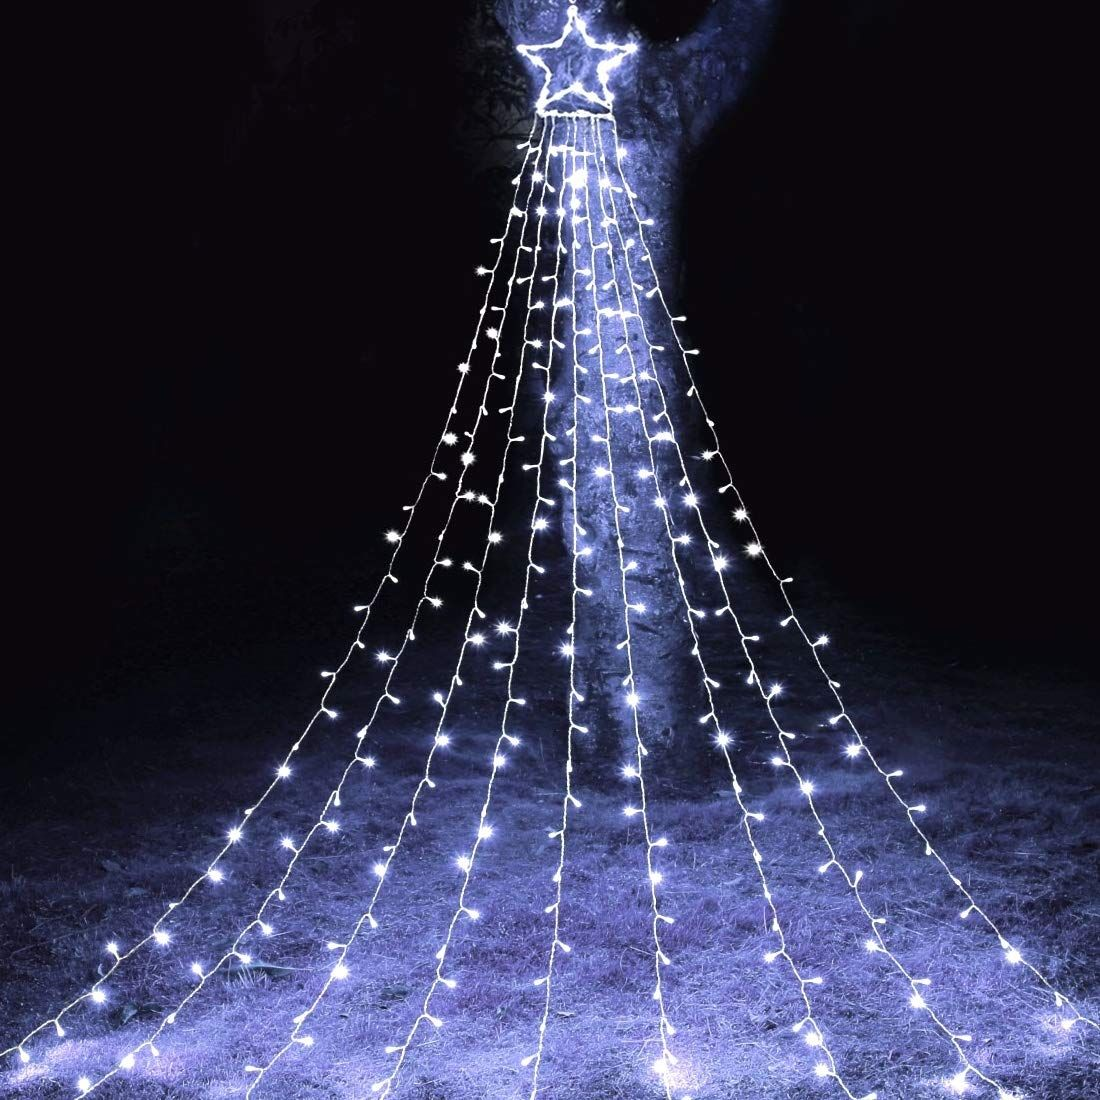 Maoyue Outdoor Christmas Decorations 335 Led Star Lights 8 Lighting Modes Outside Tree Dec Outdoor Christmas Decorations Led Star Lights Holiday Lights Outdoor